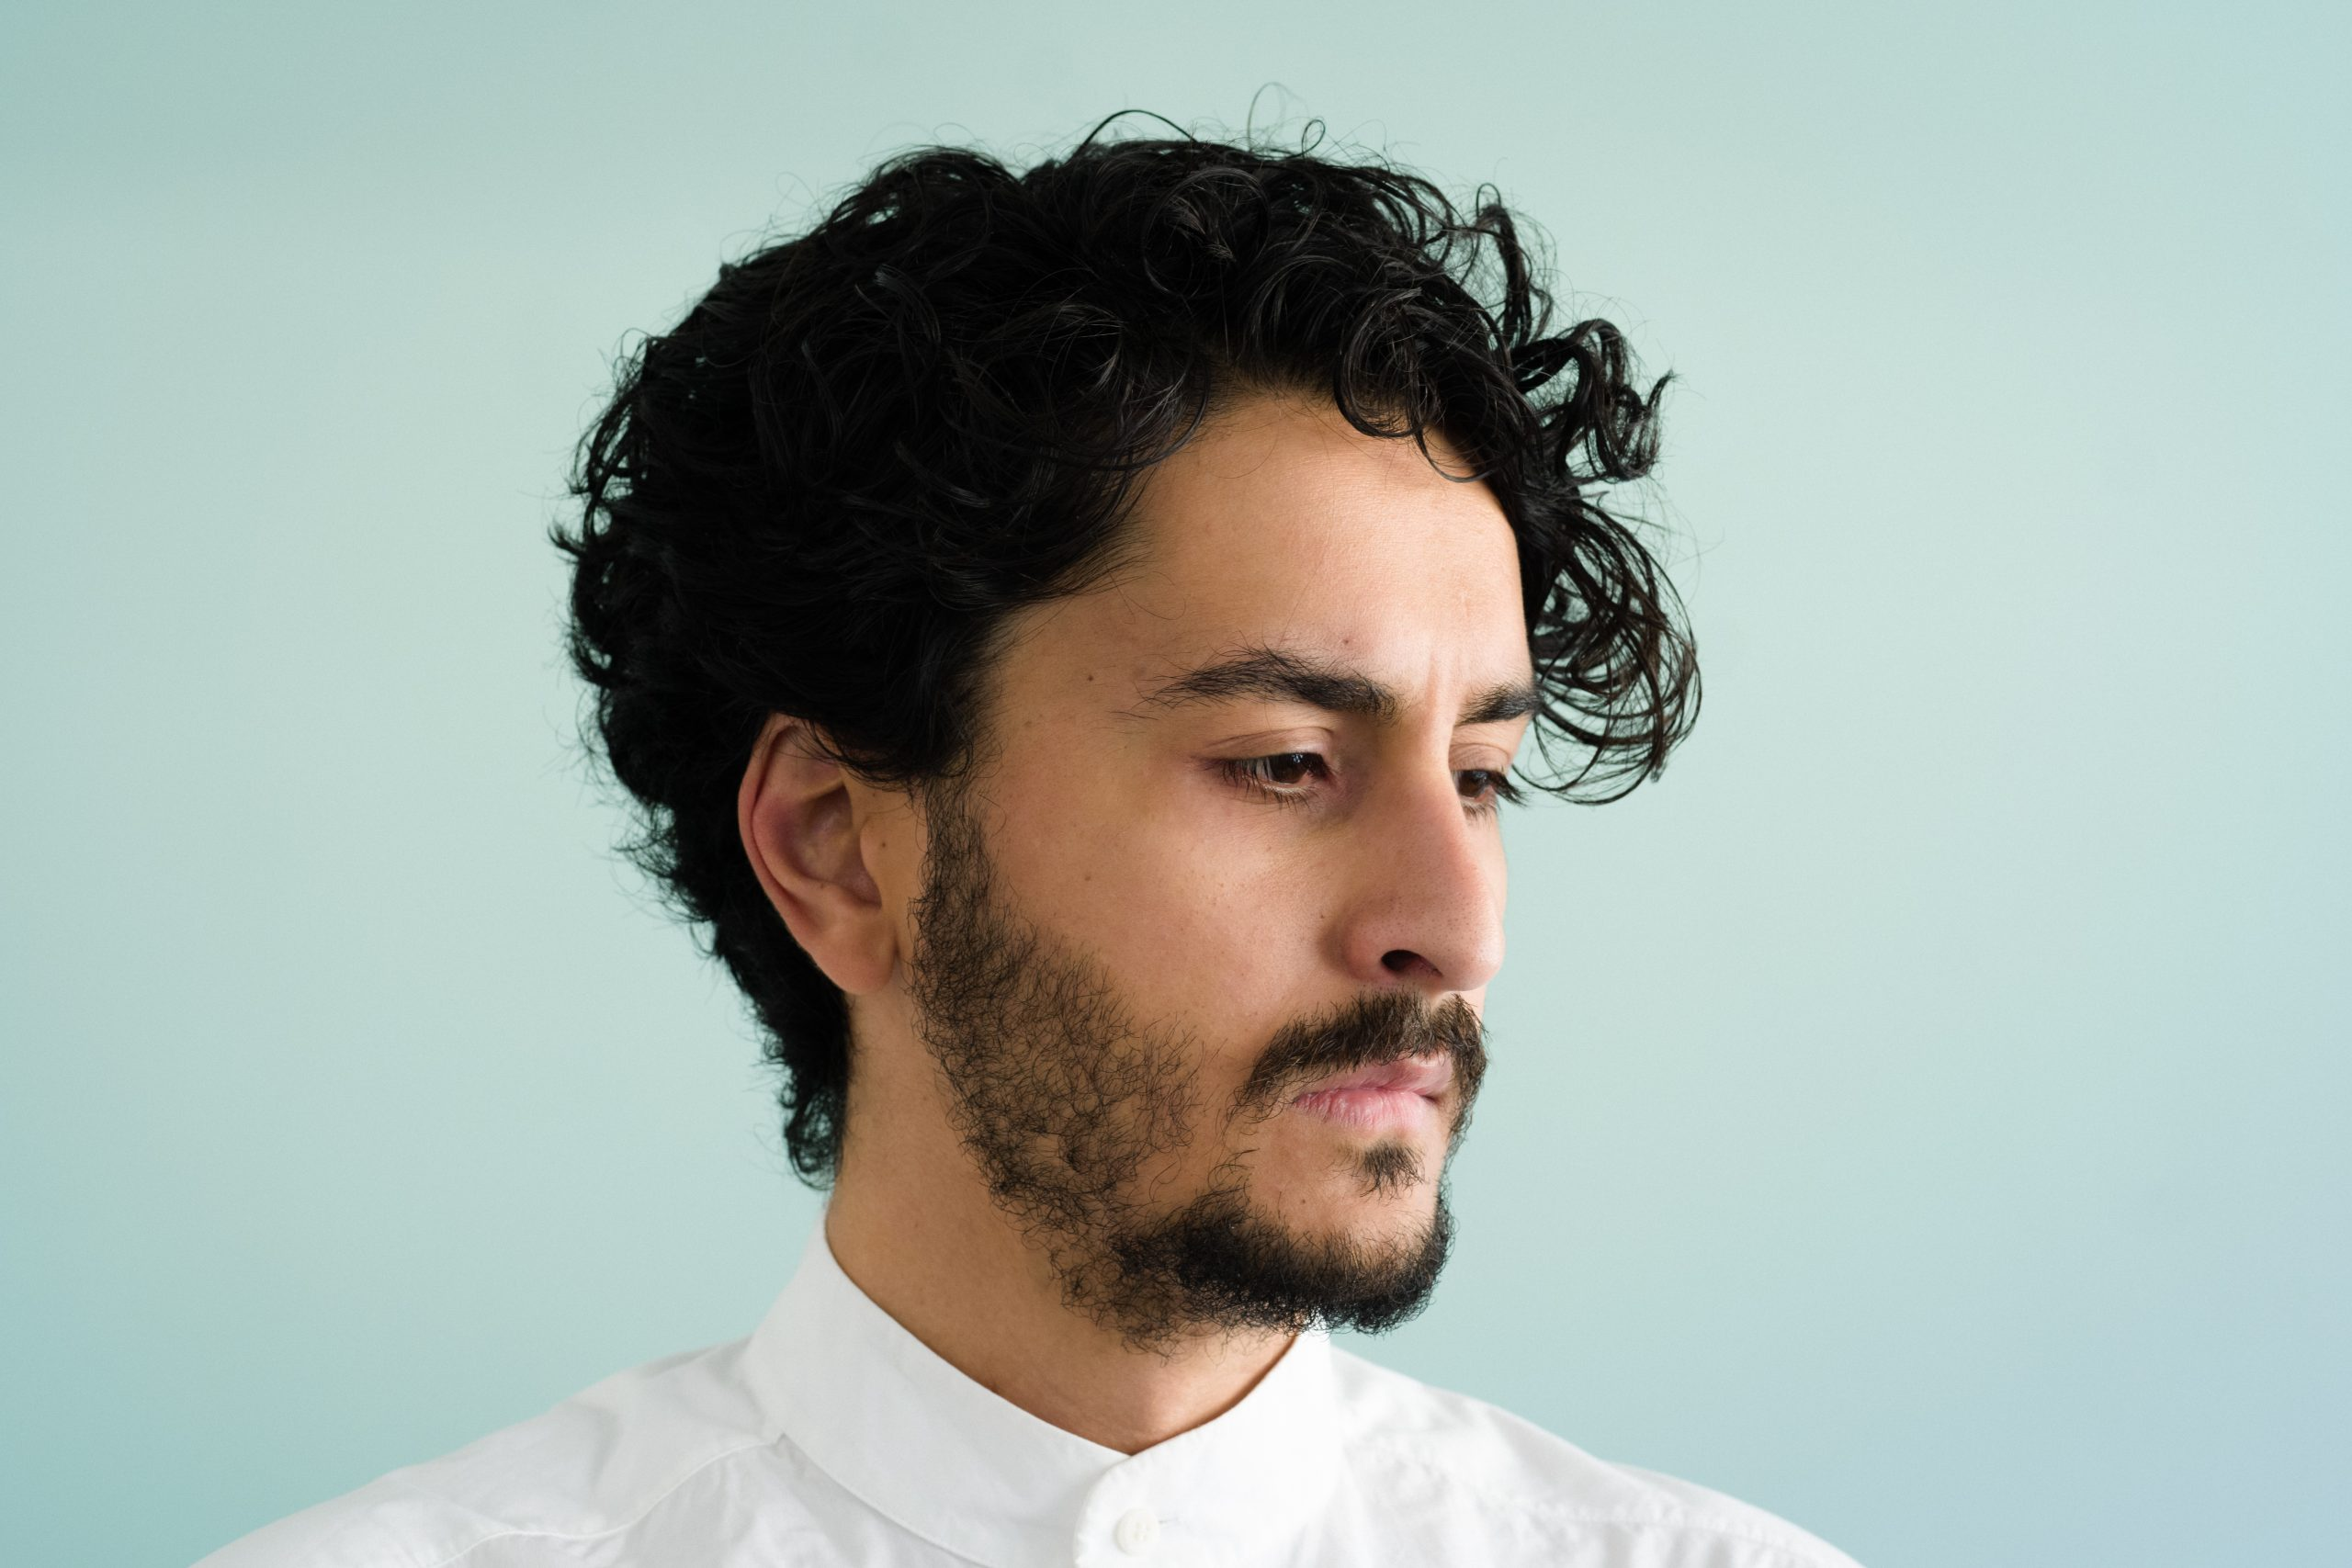 Imran Perretta (pictured) was one of 10 creatives who received the one-off bursary in place of the 2020 Turner Prize, which was cancelled due to the Covid-19 crisis (Credit: R Hylton)